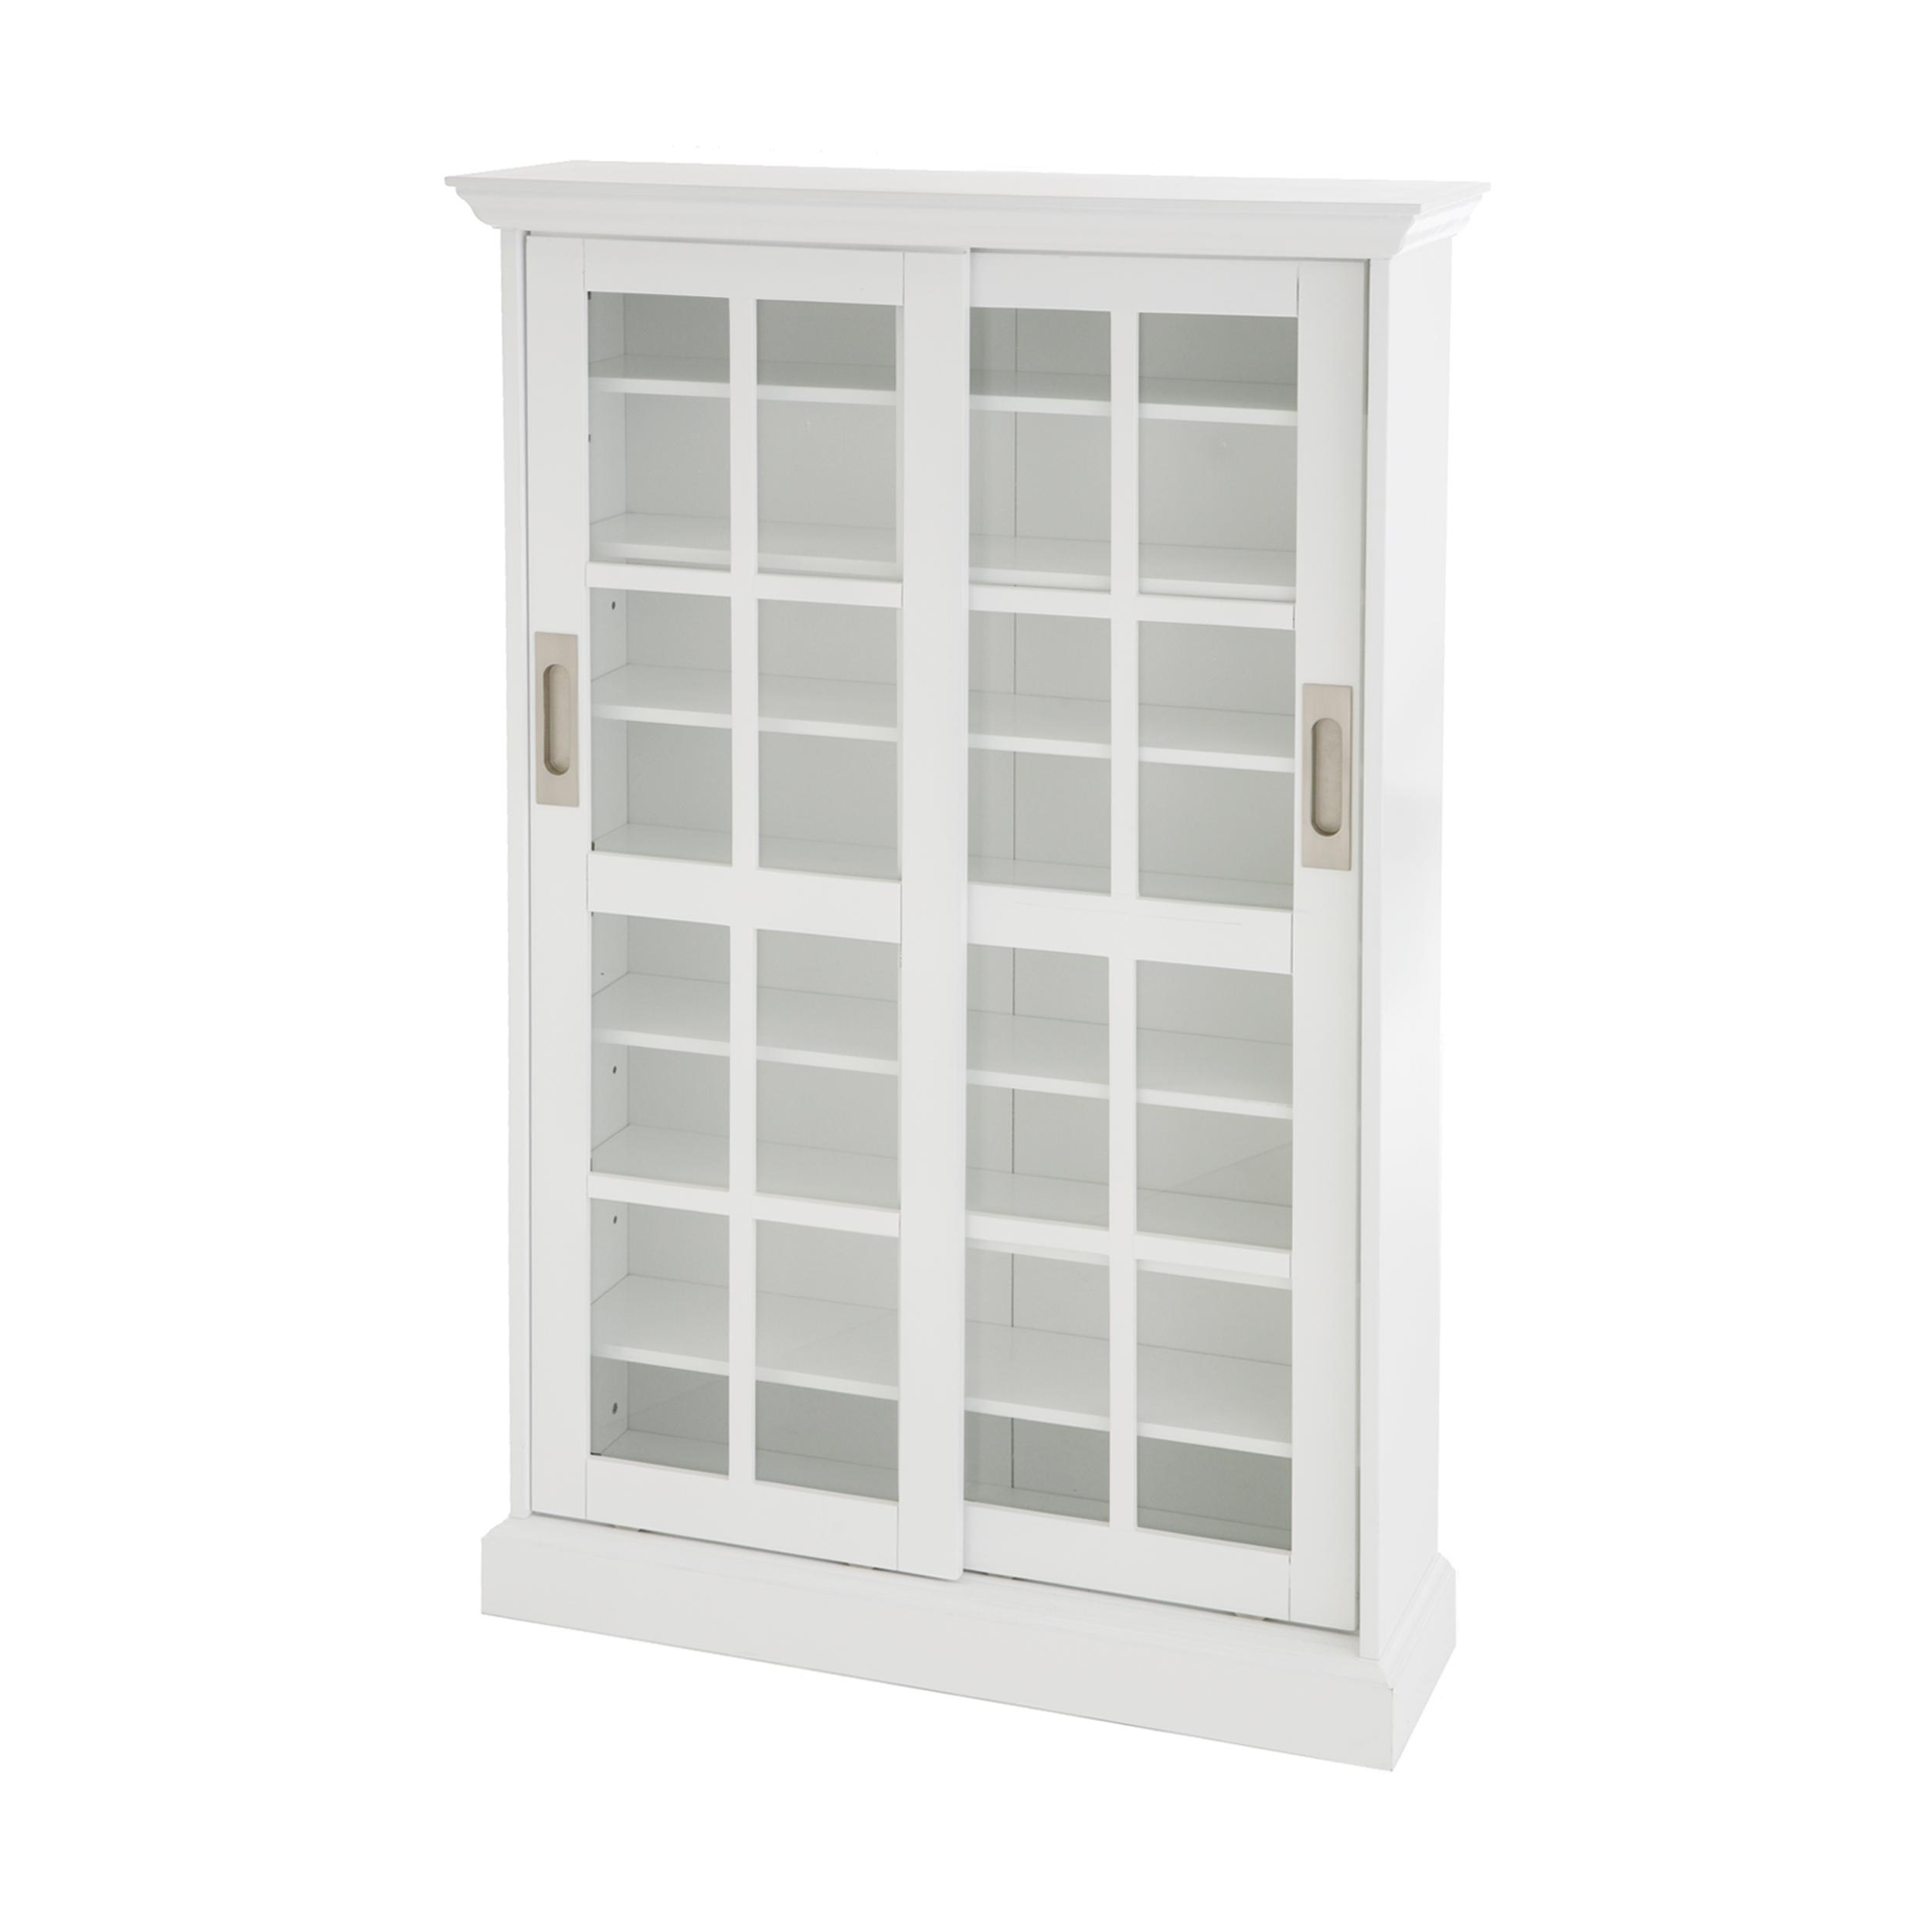 Amazon.com: Sliding Door Media Cabinet - White: Kitchen & Dining